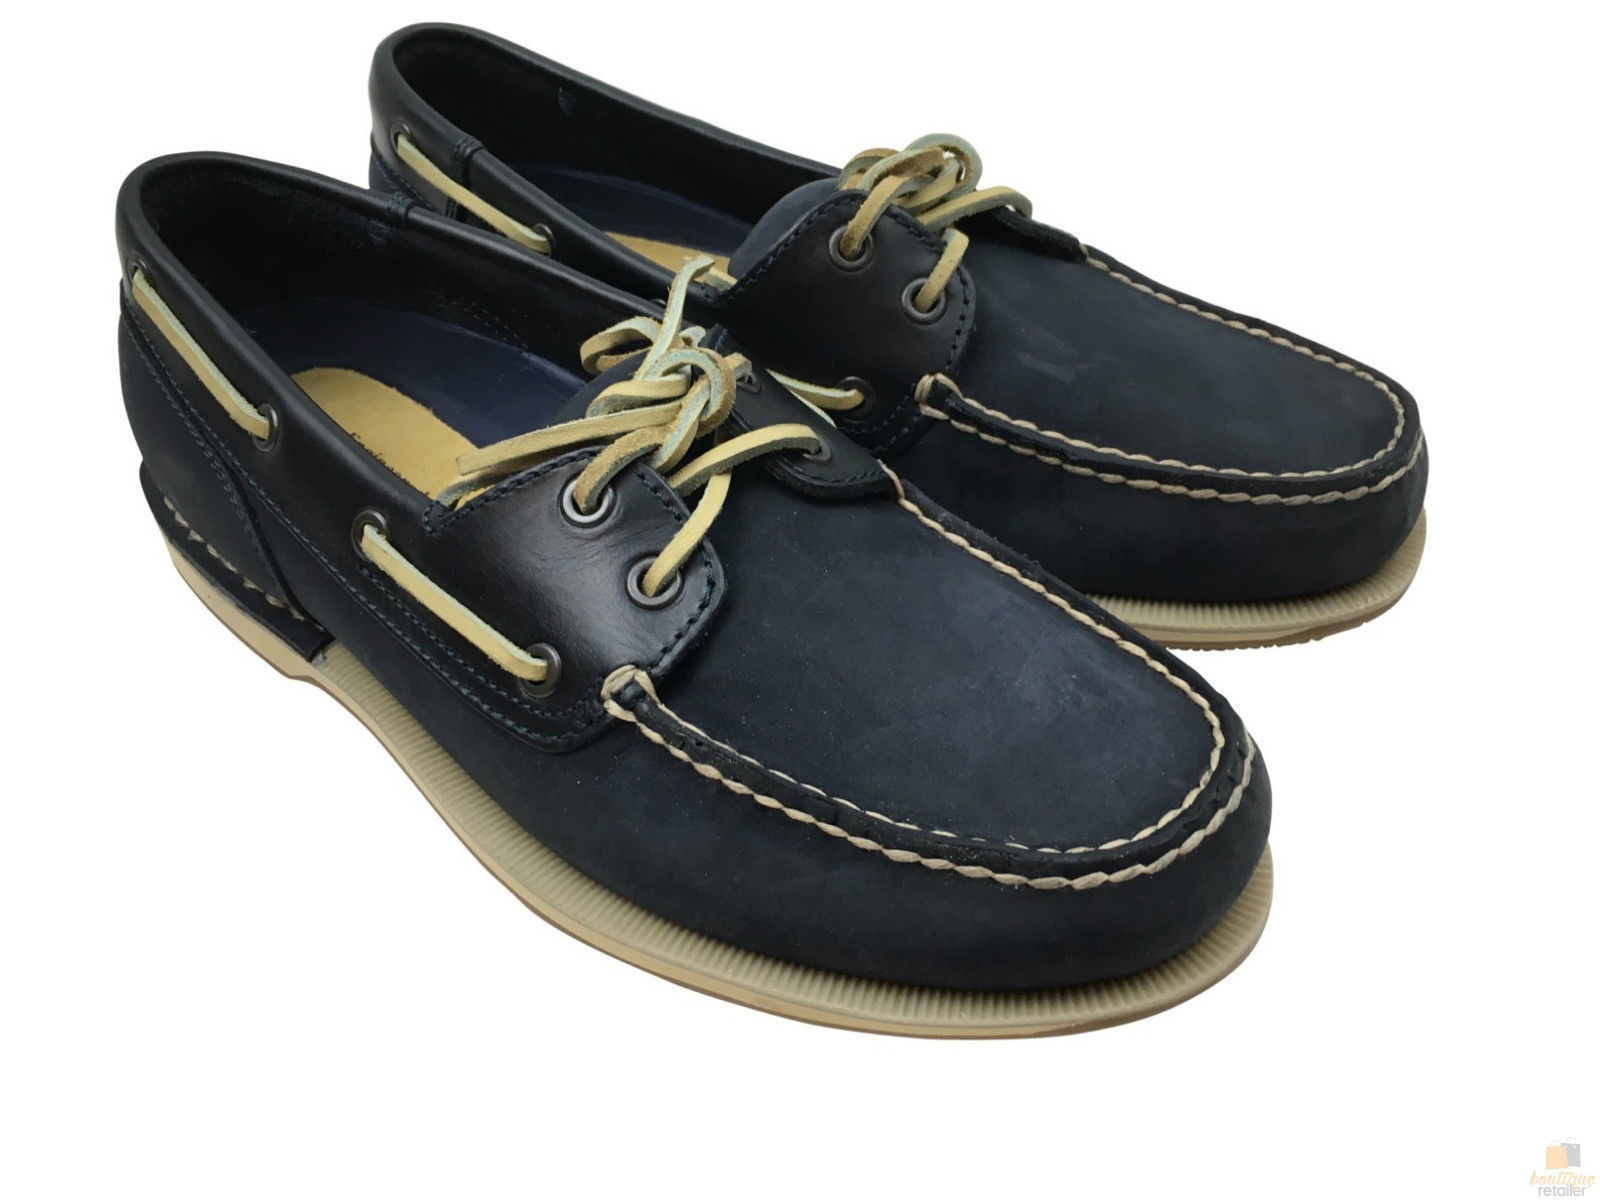 Perth Shoes Rockport Perth Boat Shoes Leather Casual Footwear Loafers